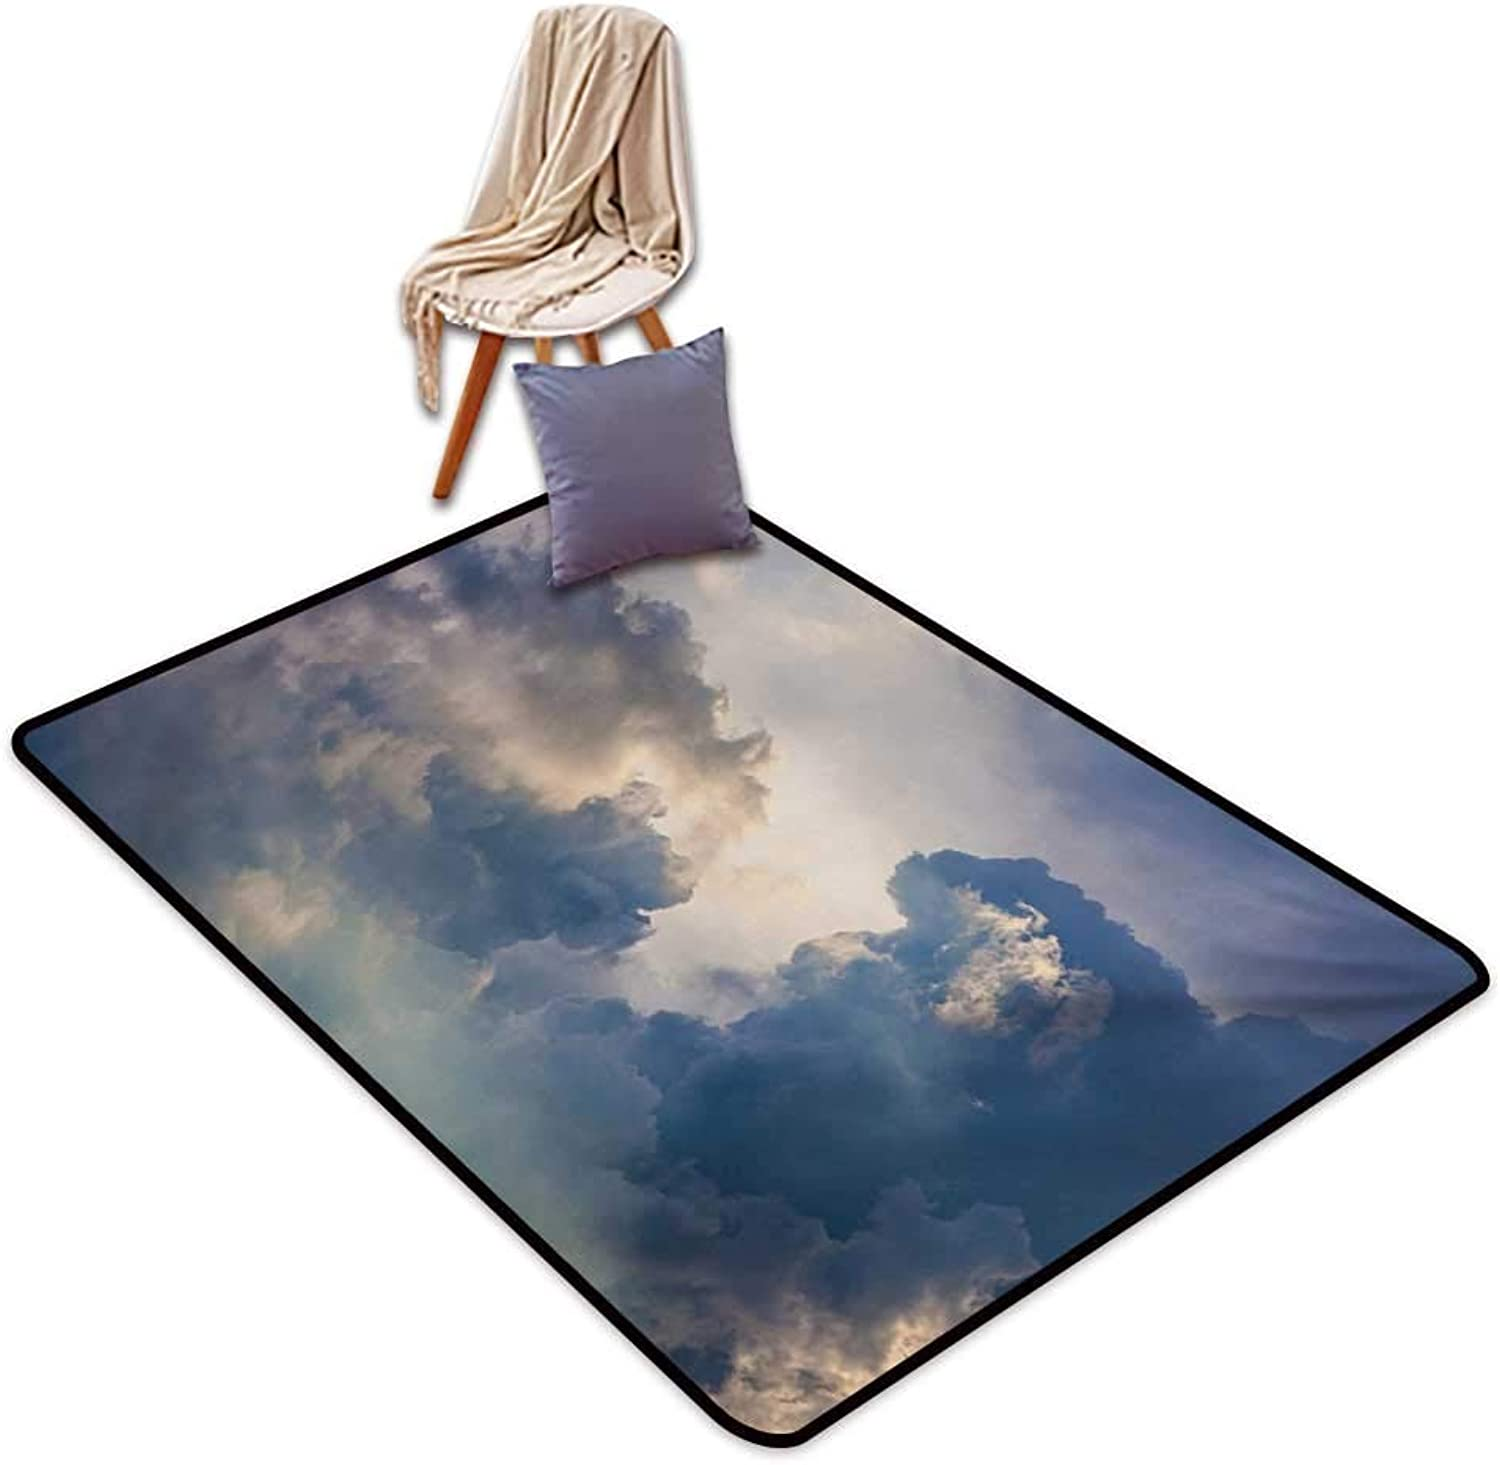 Clouds Latex Backing Non Slip Door Mat Majestic Rain Storm Clouds Over The Sky High Above The Ground Environment Scenery Water Absorption, Anti-Skid and Oil Proof 48  Wx59 L bluee White